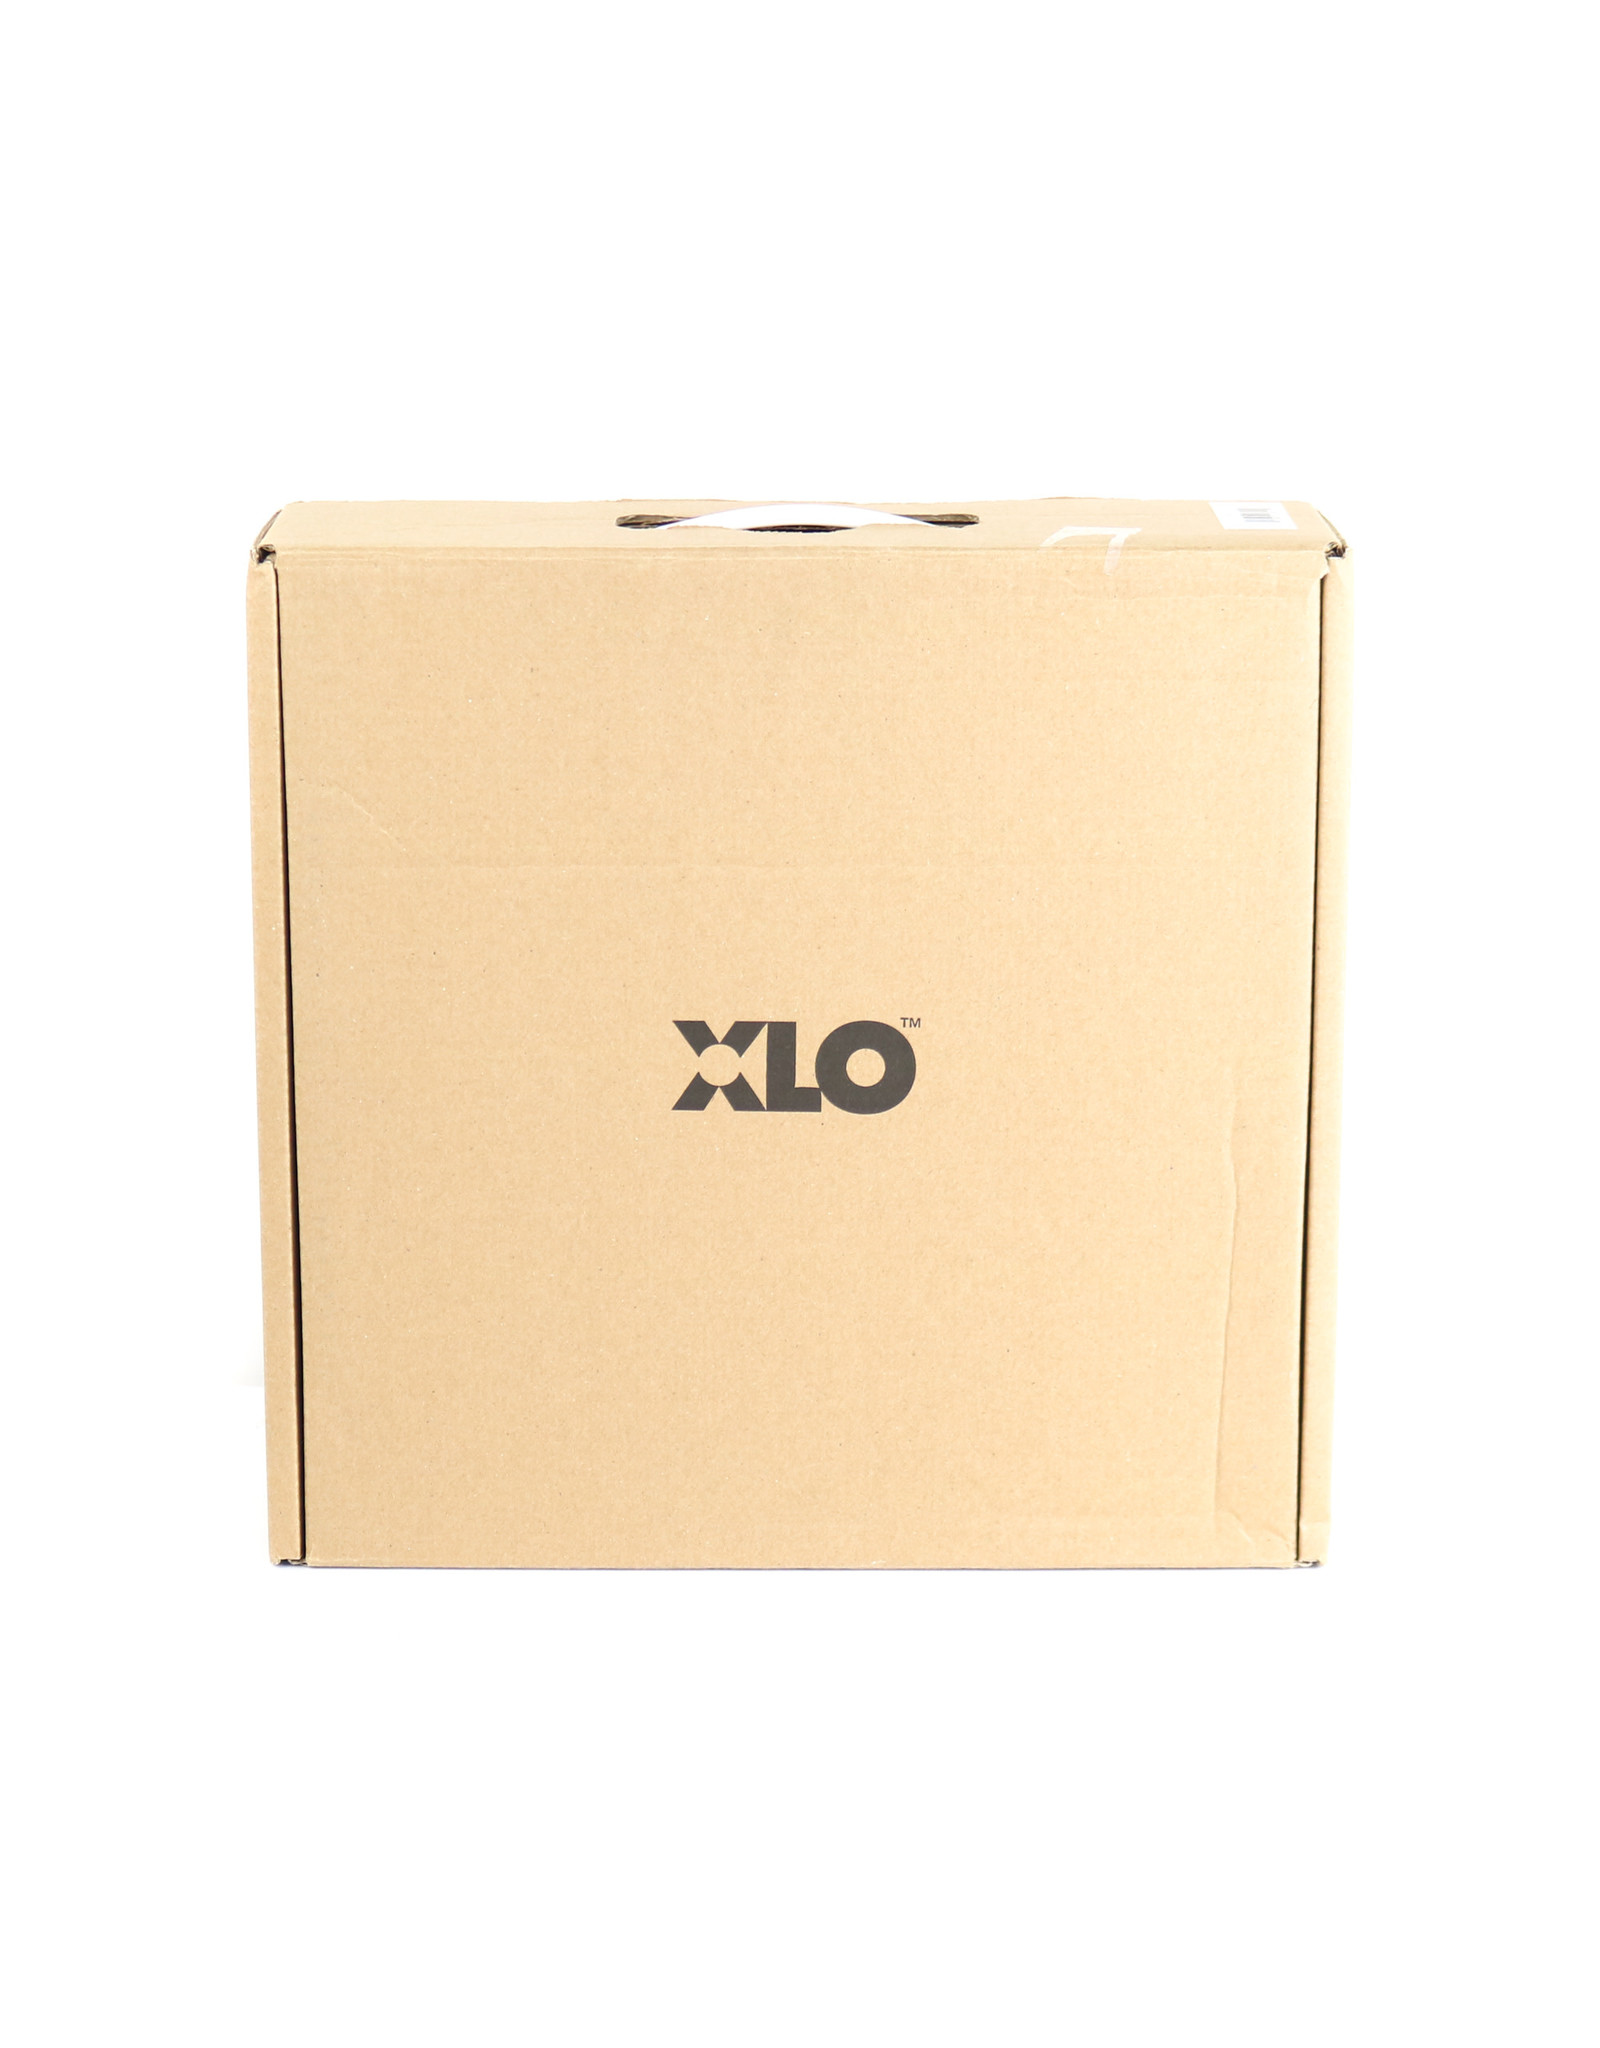 XLO XLO Ultra Plus U10 Power Cable 6 Foot USED (New Clearance)